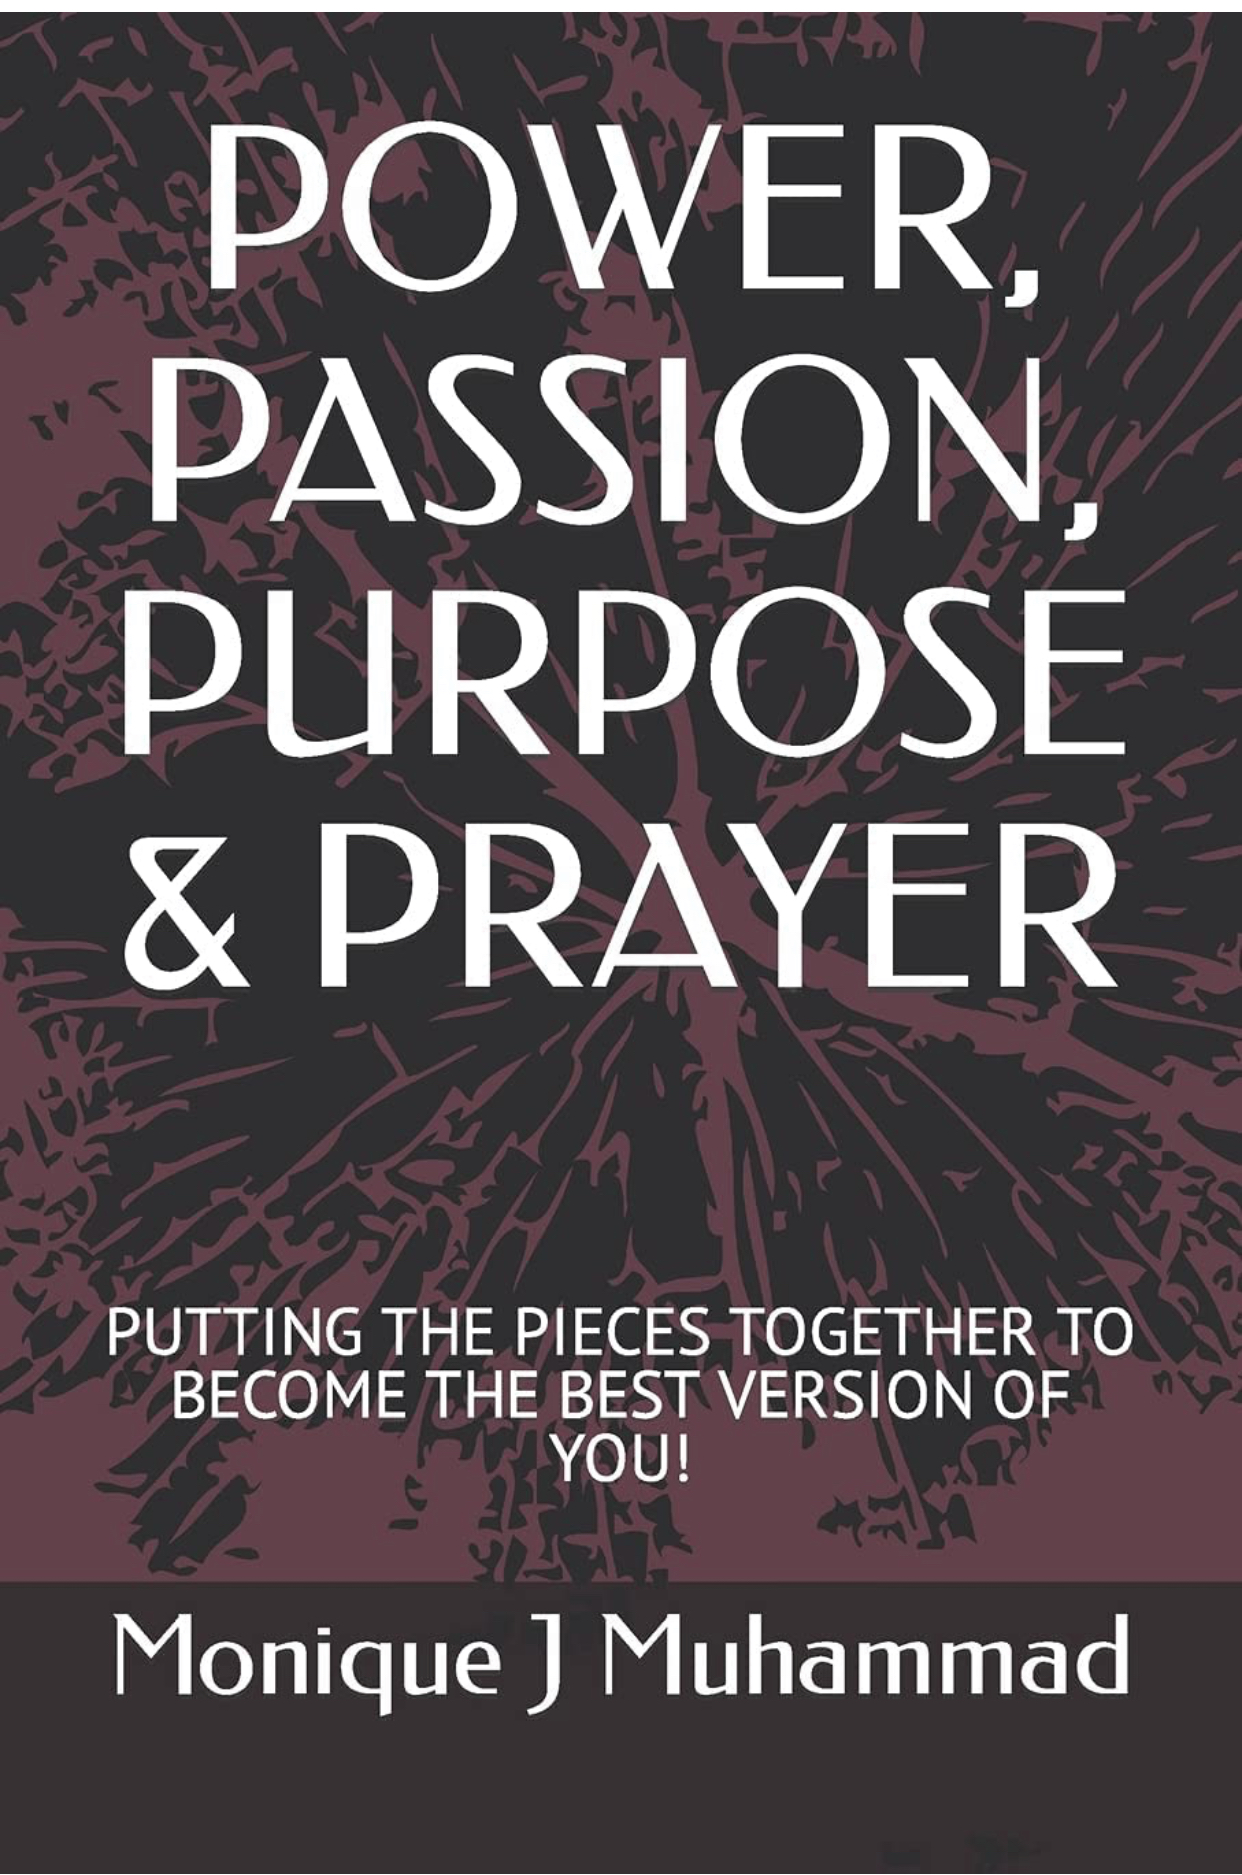 """Author, Business Master & Coach Monique Je' Muhammad Announces the Release of Her New Self-Help Book """"Power, Passion, Purpose & Prayer"""""""